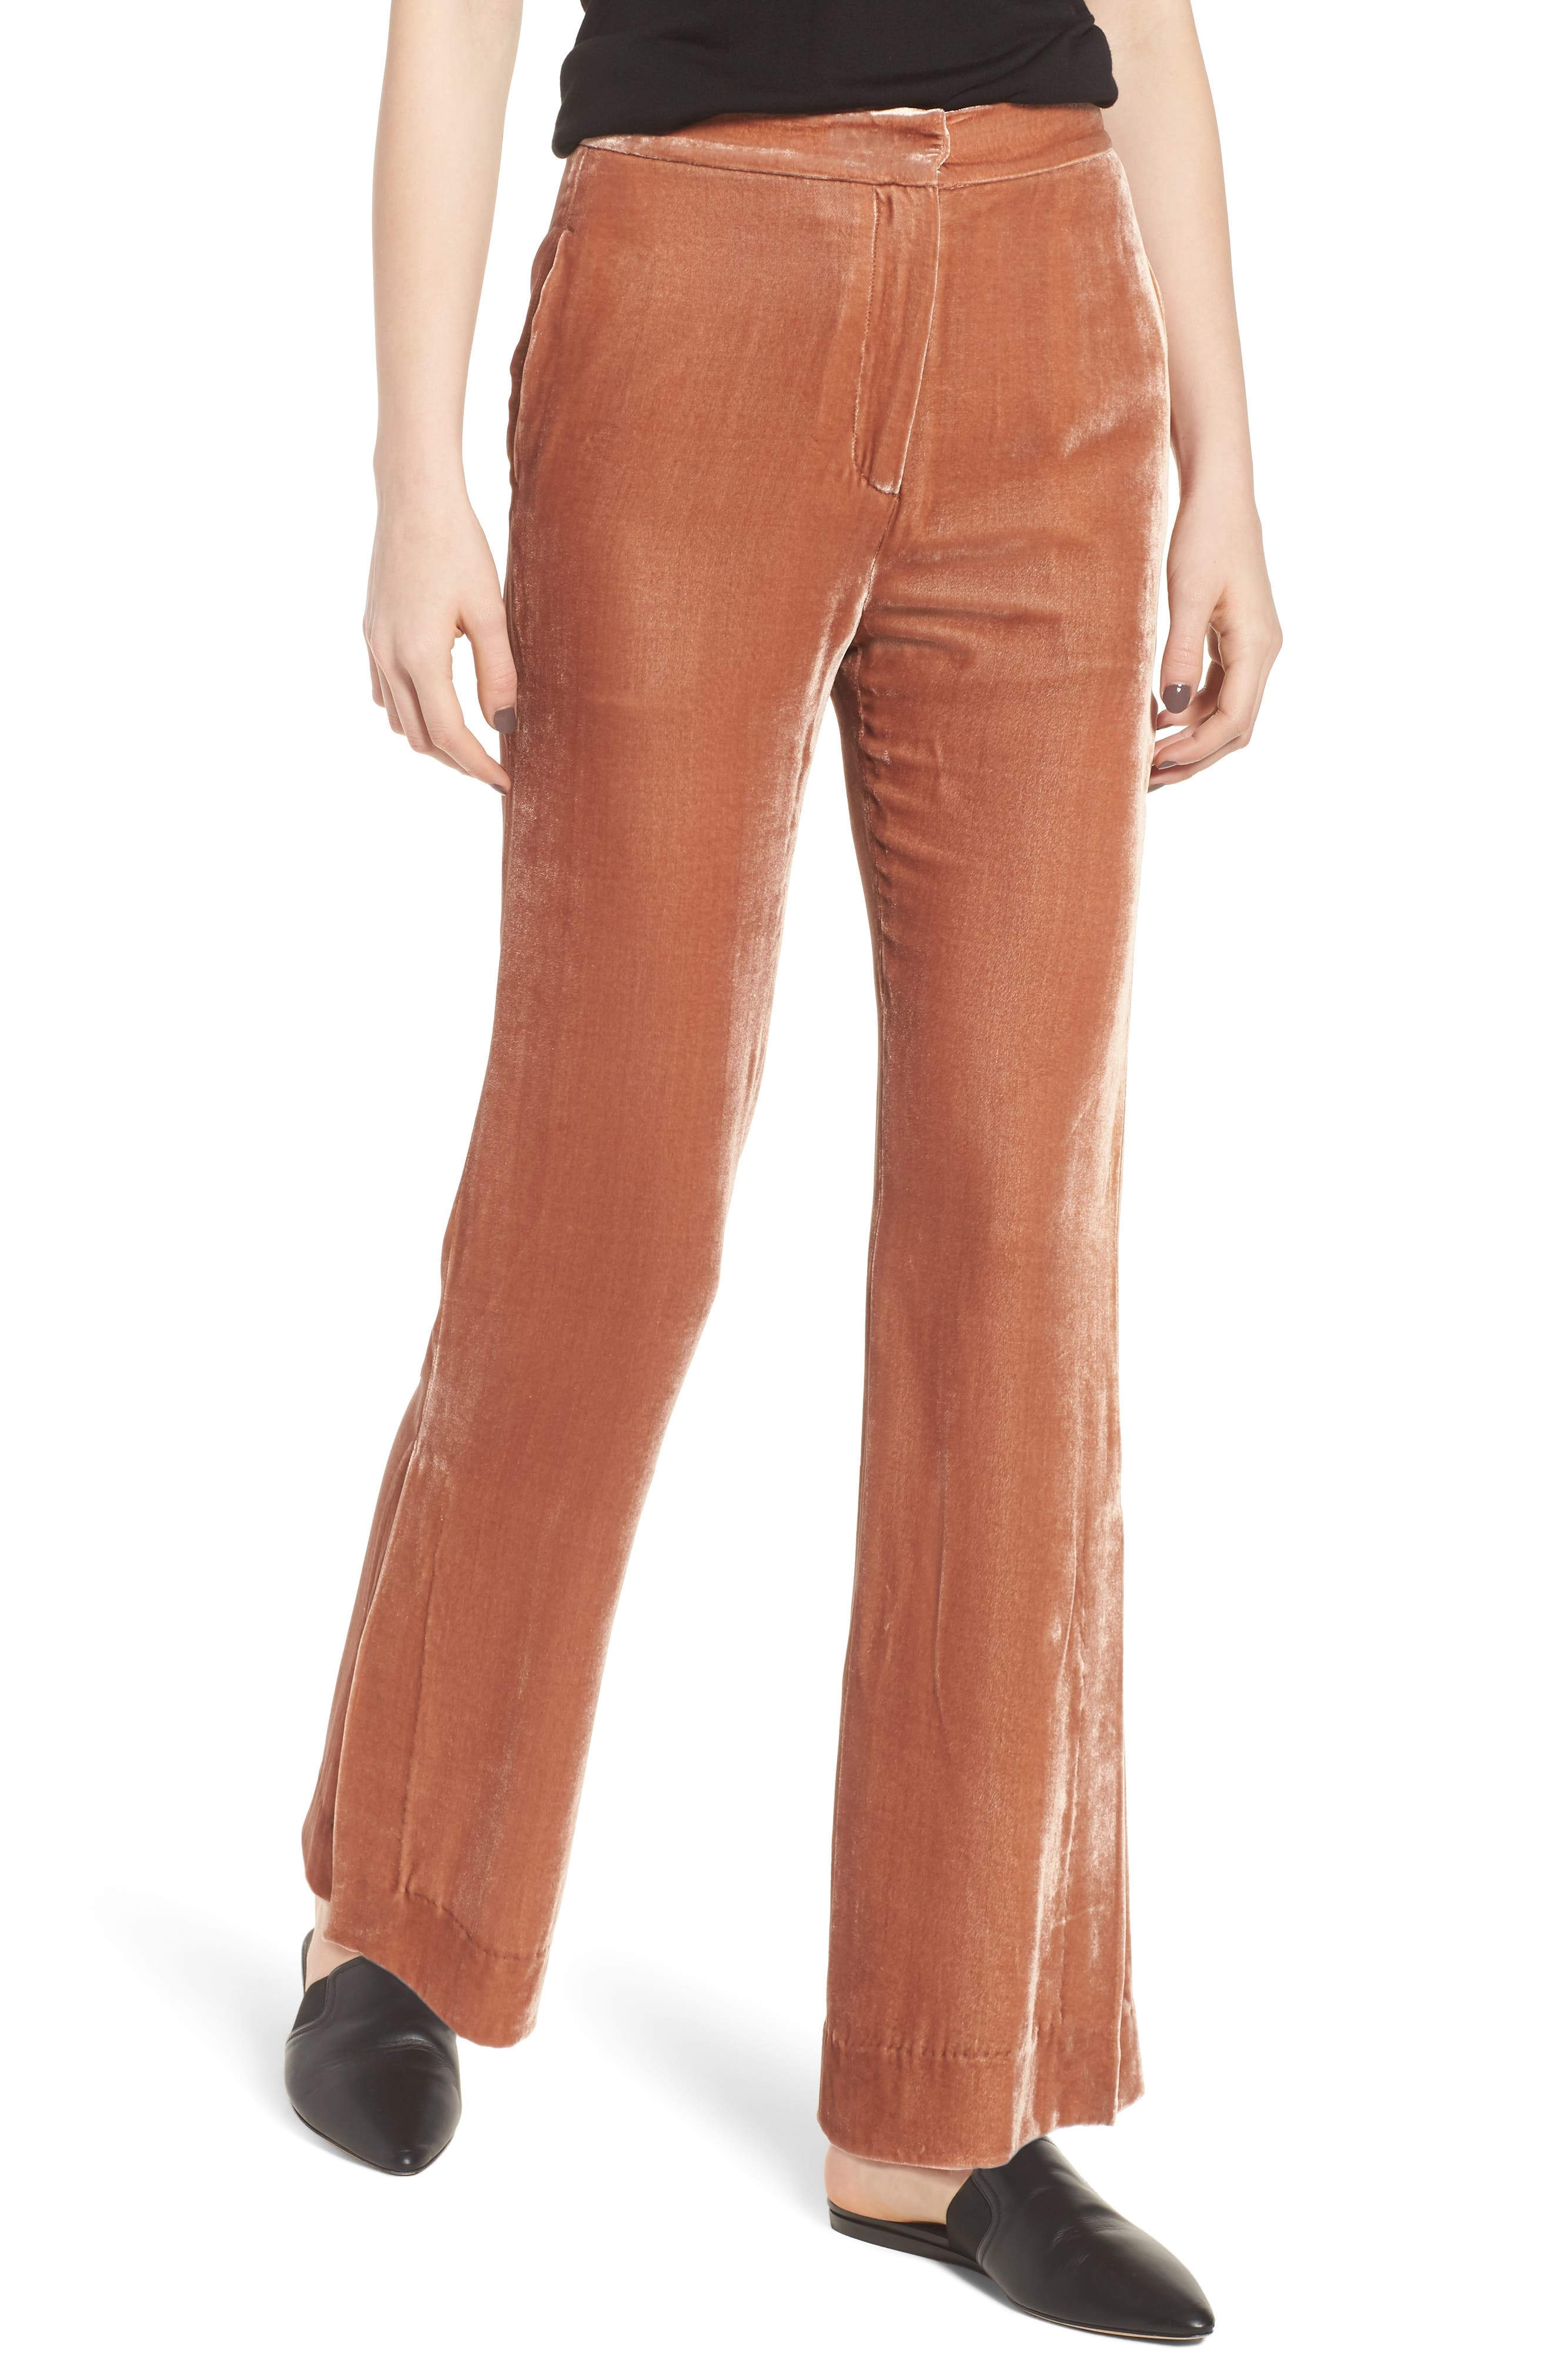 Bushwick Velvet Pants,                             Main thumbnail 1, color,                             200